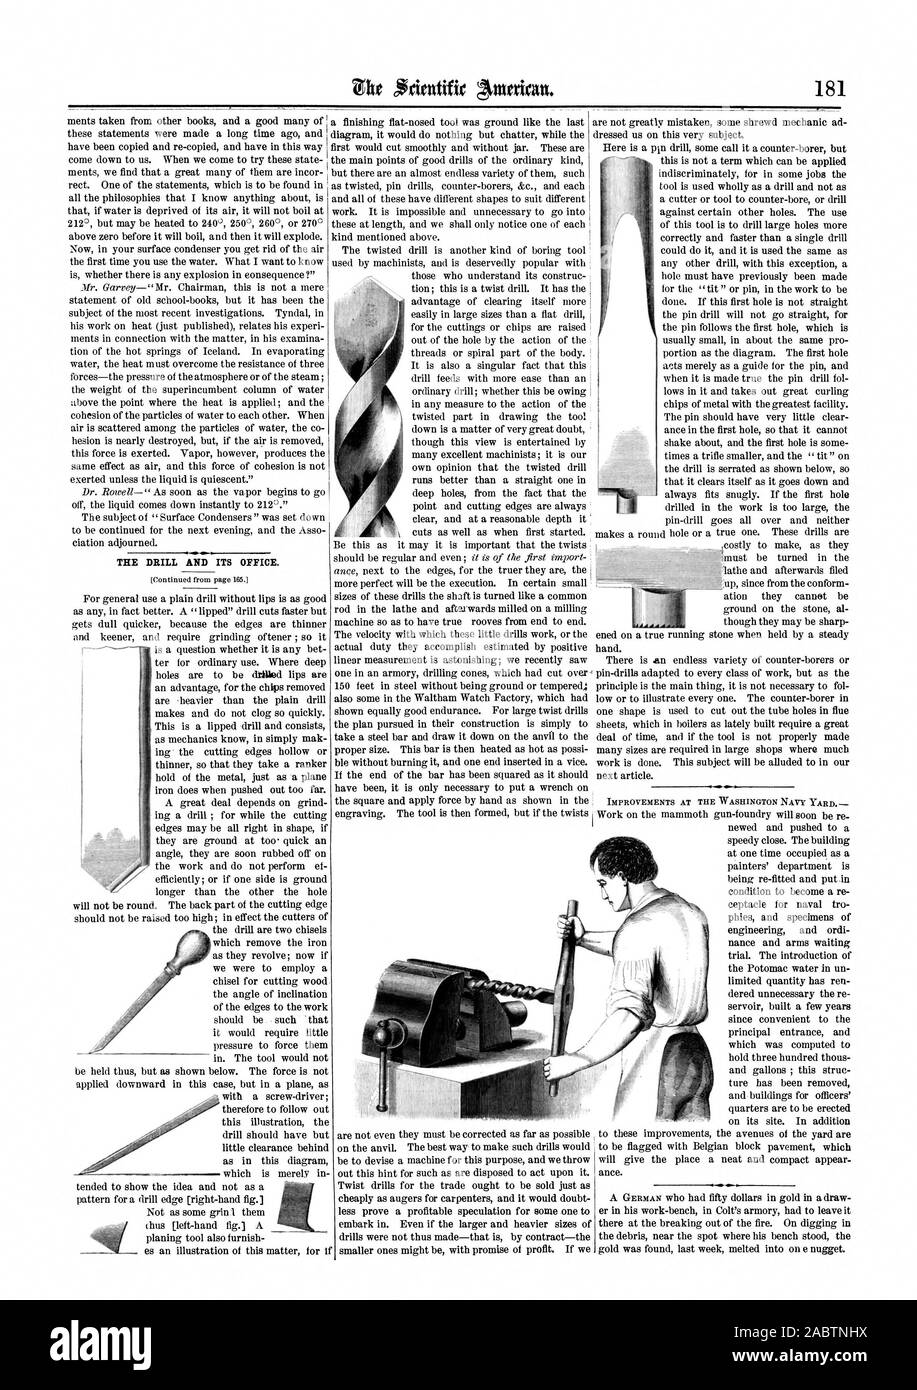 THE DRILL AND ITS OFFICE. (Continued from page 165.1 IMPROVEMENTS AT THE WASHINGTON NAVY YARD, scientific american, 1864-03-19 Stock Photo